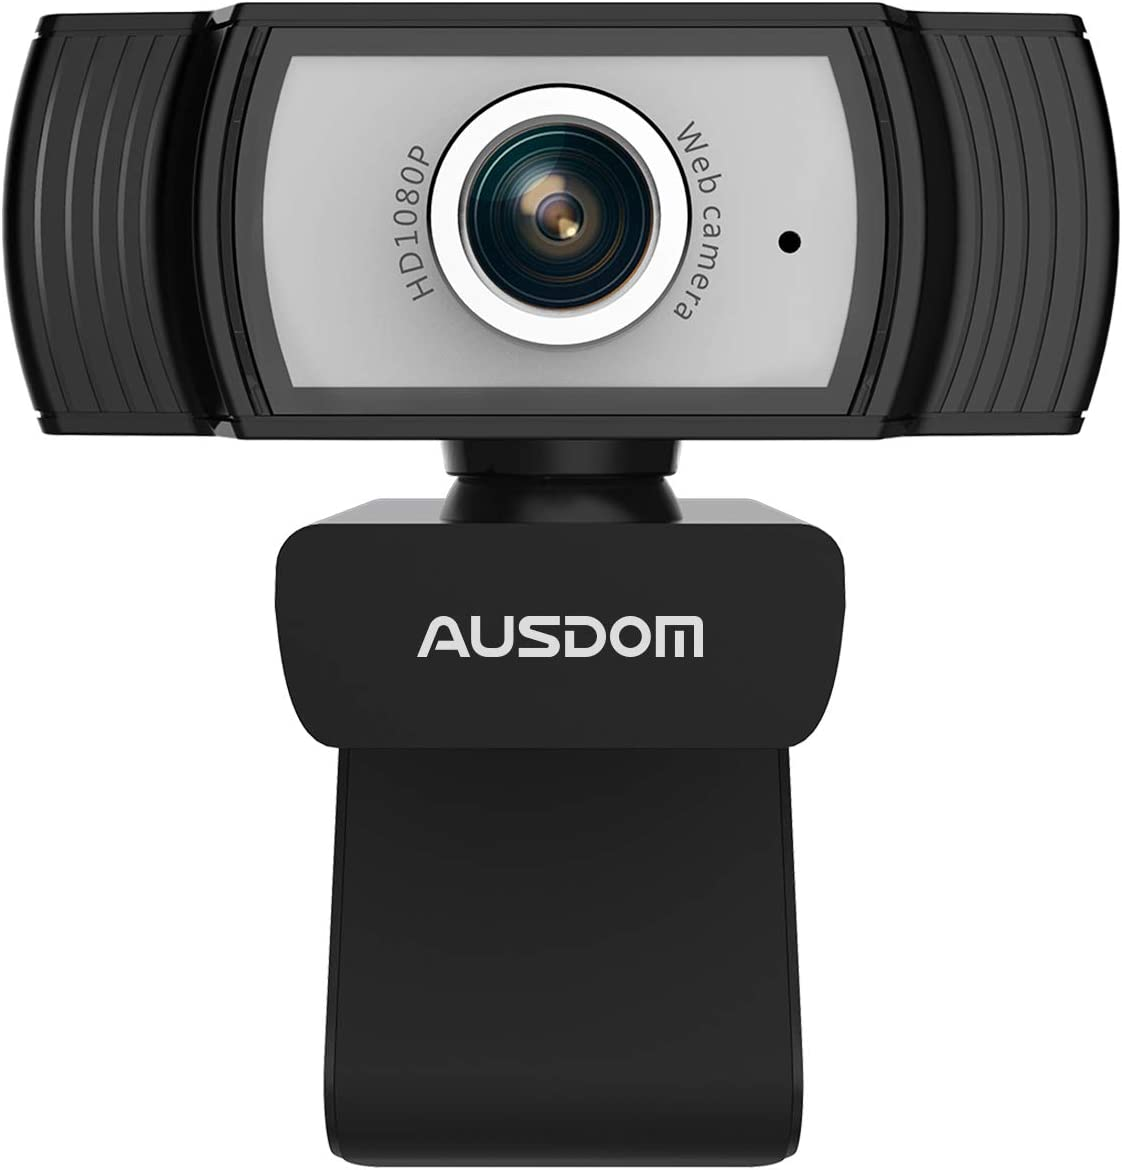 AUSDOM AW33 1080P Full HD Webcam with Built-in Noise Reduction Microphone Stream USB Web Camera for Zoom Meeting, Video Conferencing, Online Work, Home, Office,YouTube, Skype, and Streaming